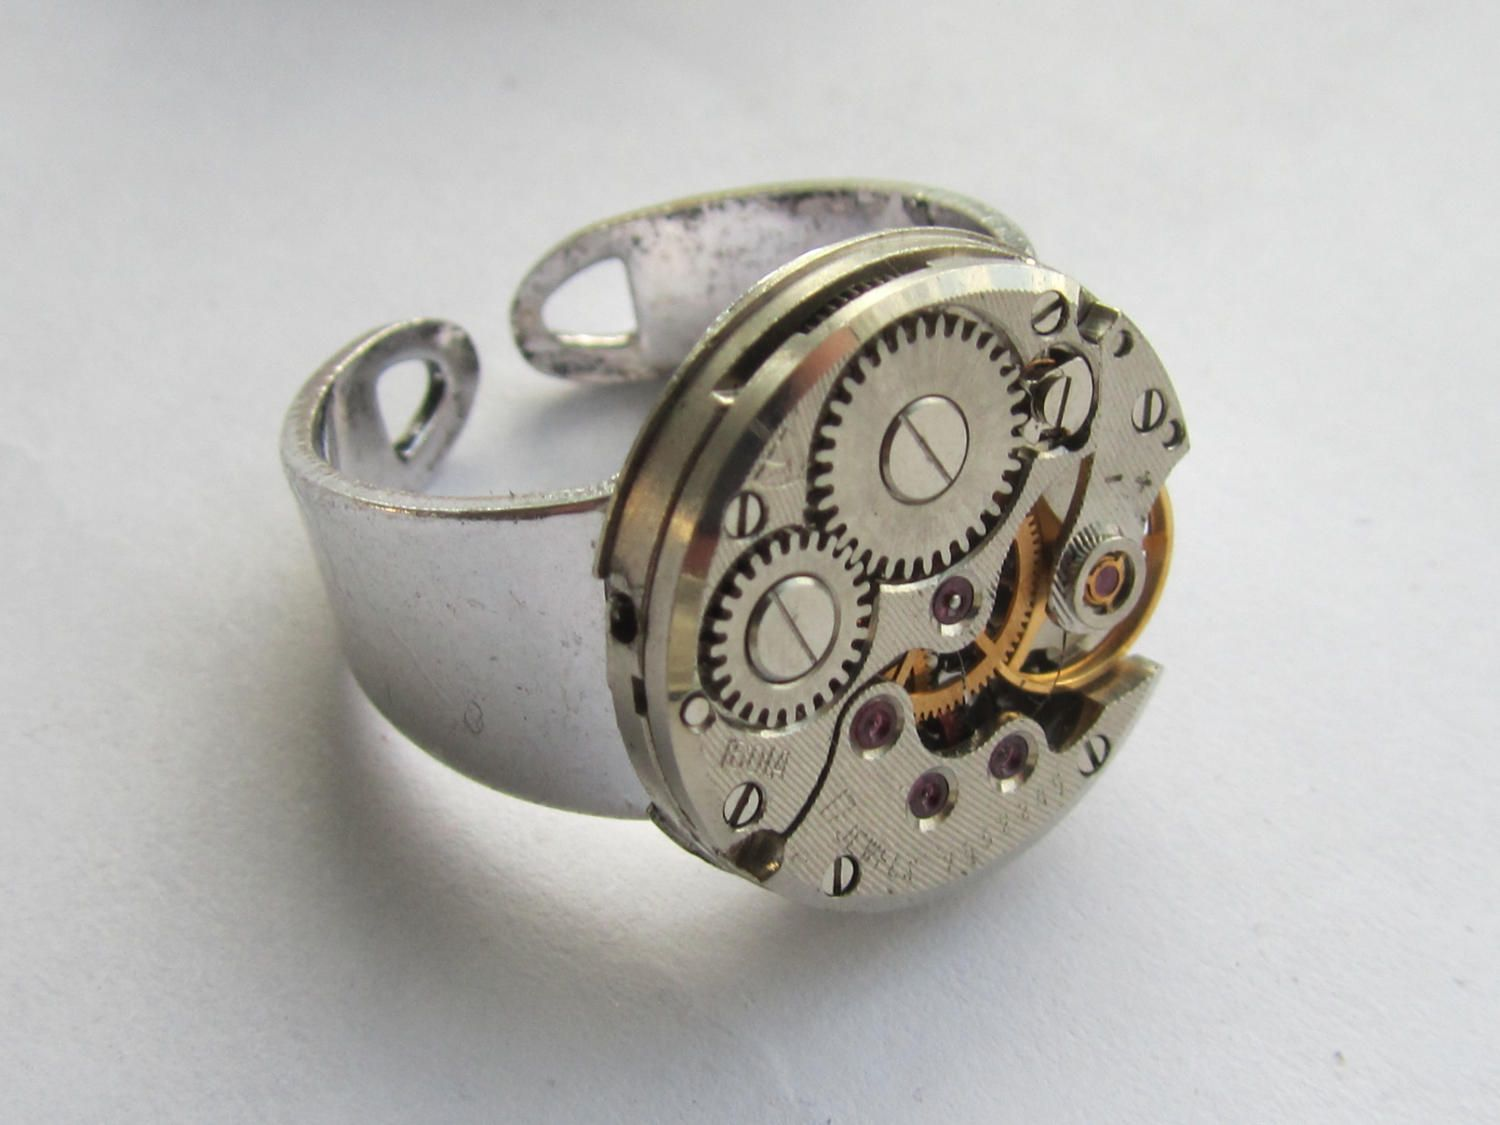 Steampunk Adjustable Watch Ring Gift For Him Mens Birthday Ideas Industrial Jewellery Boyfriend Anniversary Gifts